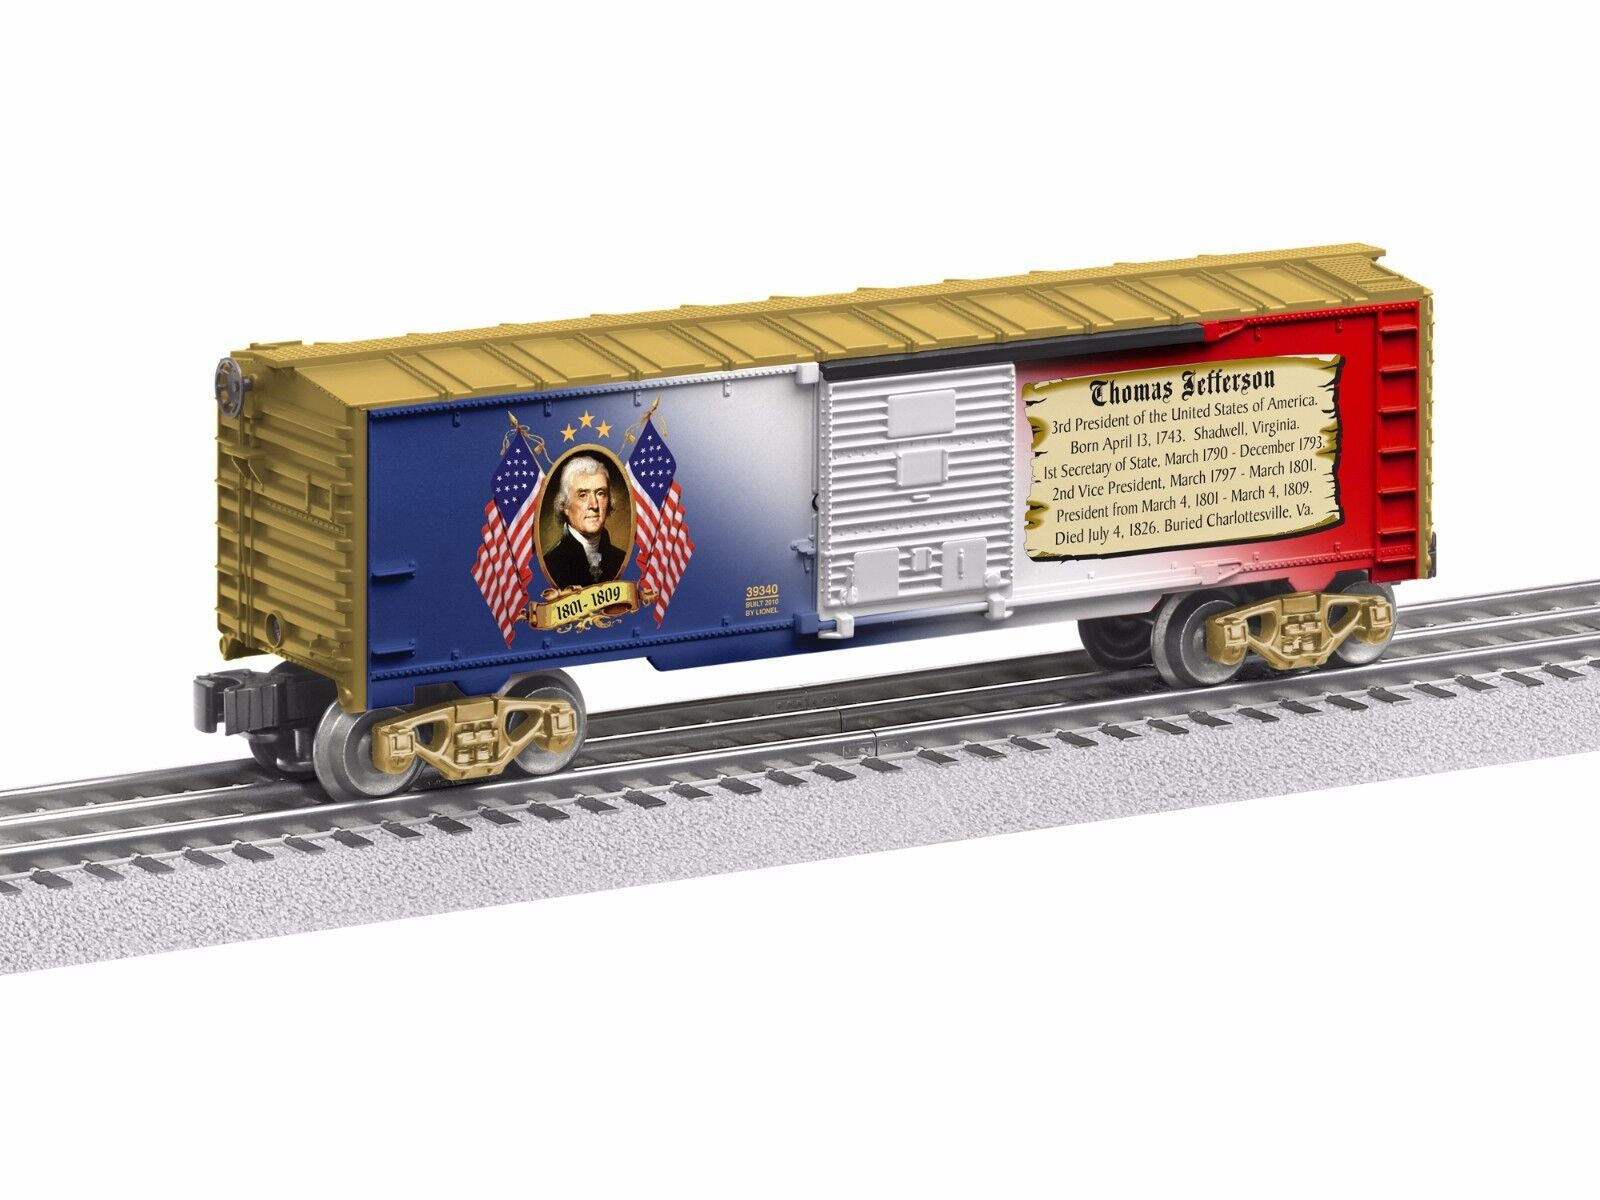 2012 6-39340 Thomas Jefferson Boxcar free shipping made in the usa new in the bo